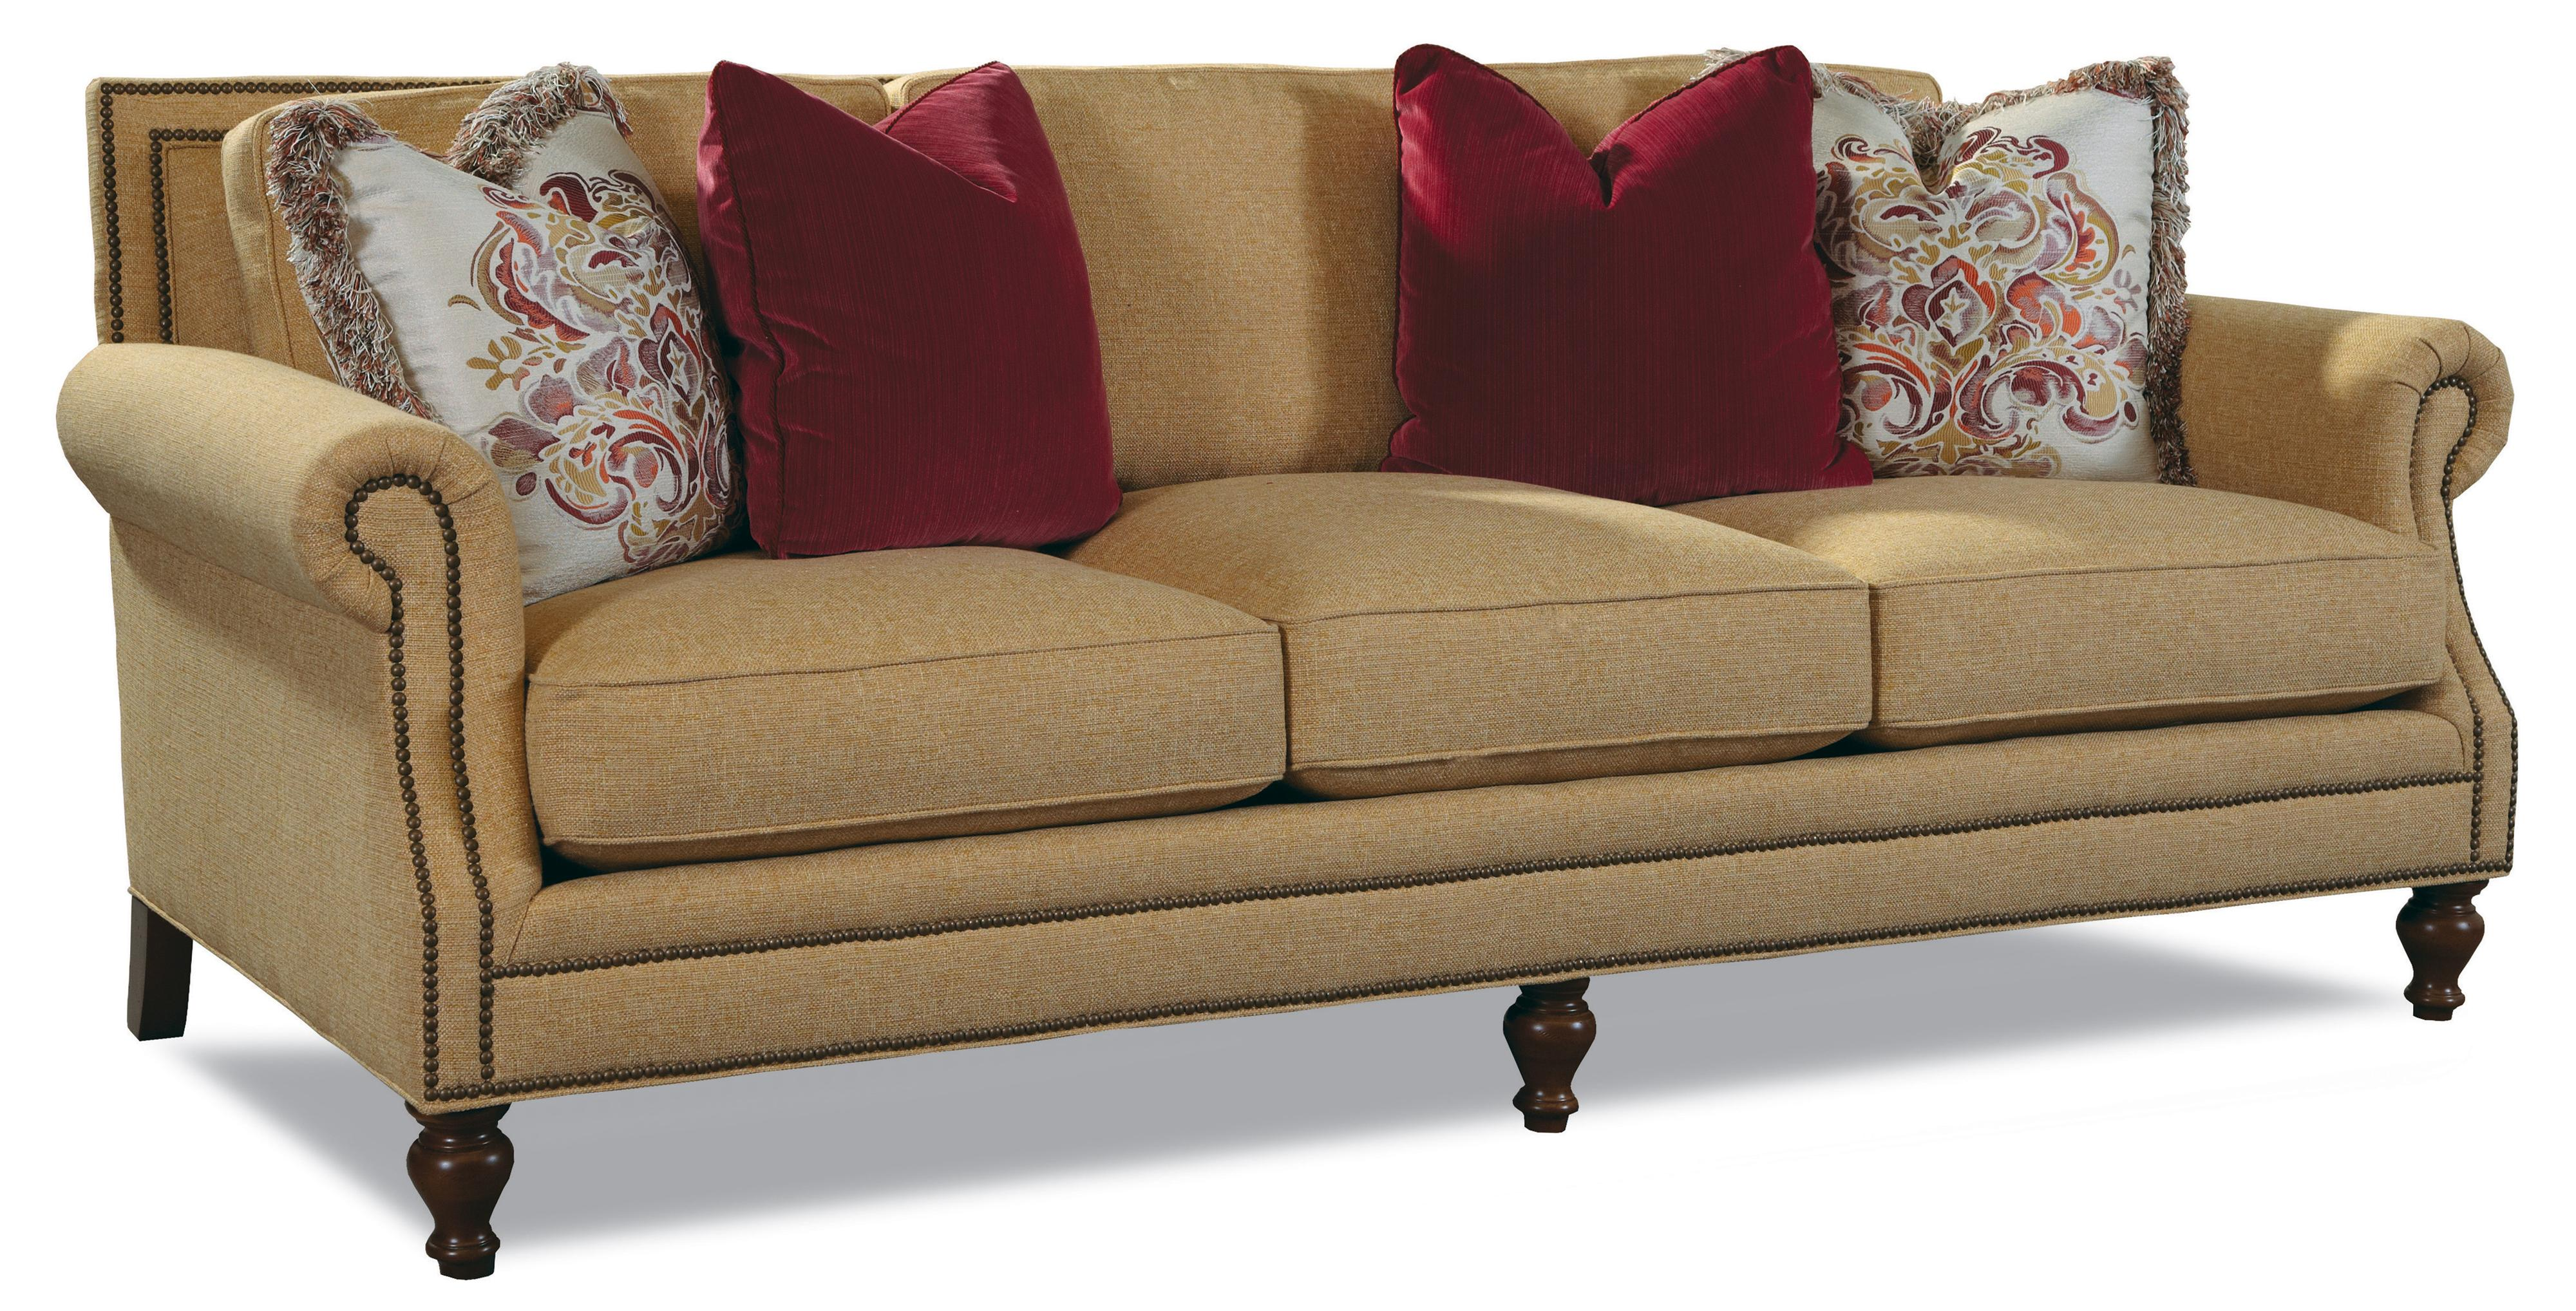 7220 Sofa by Geoffrey Alexander at Sprintz Furniture